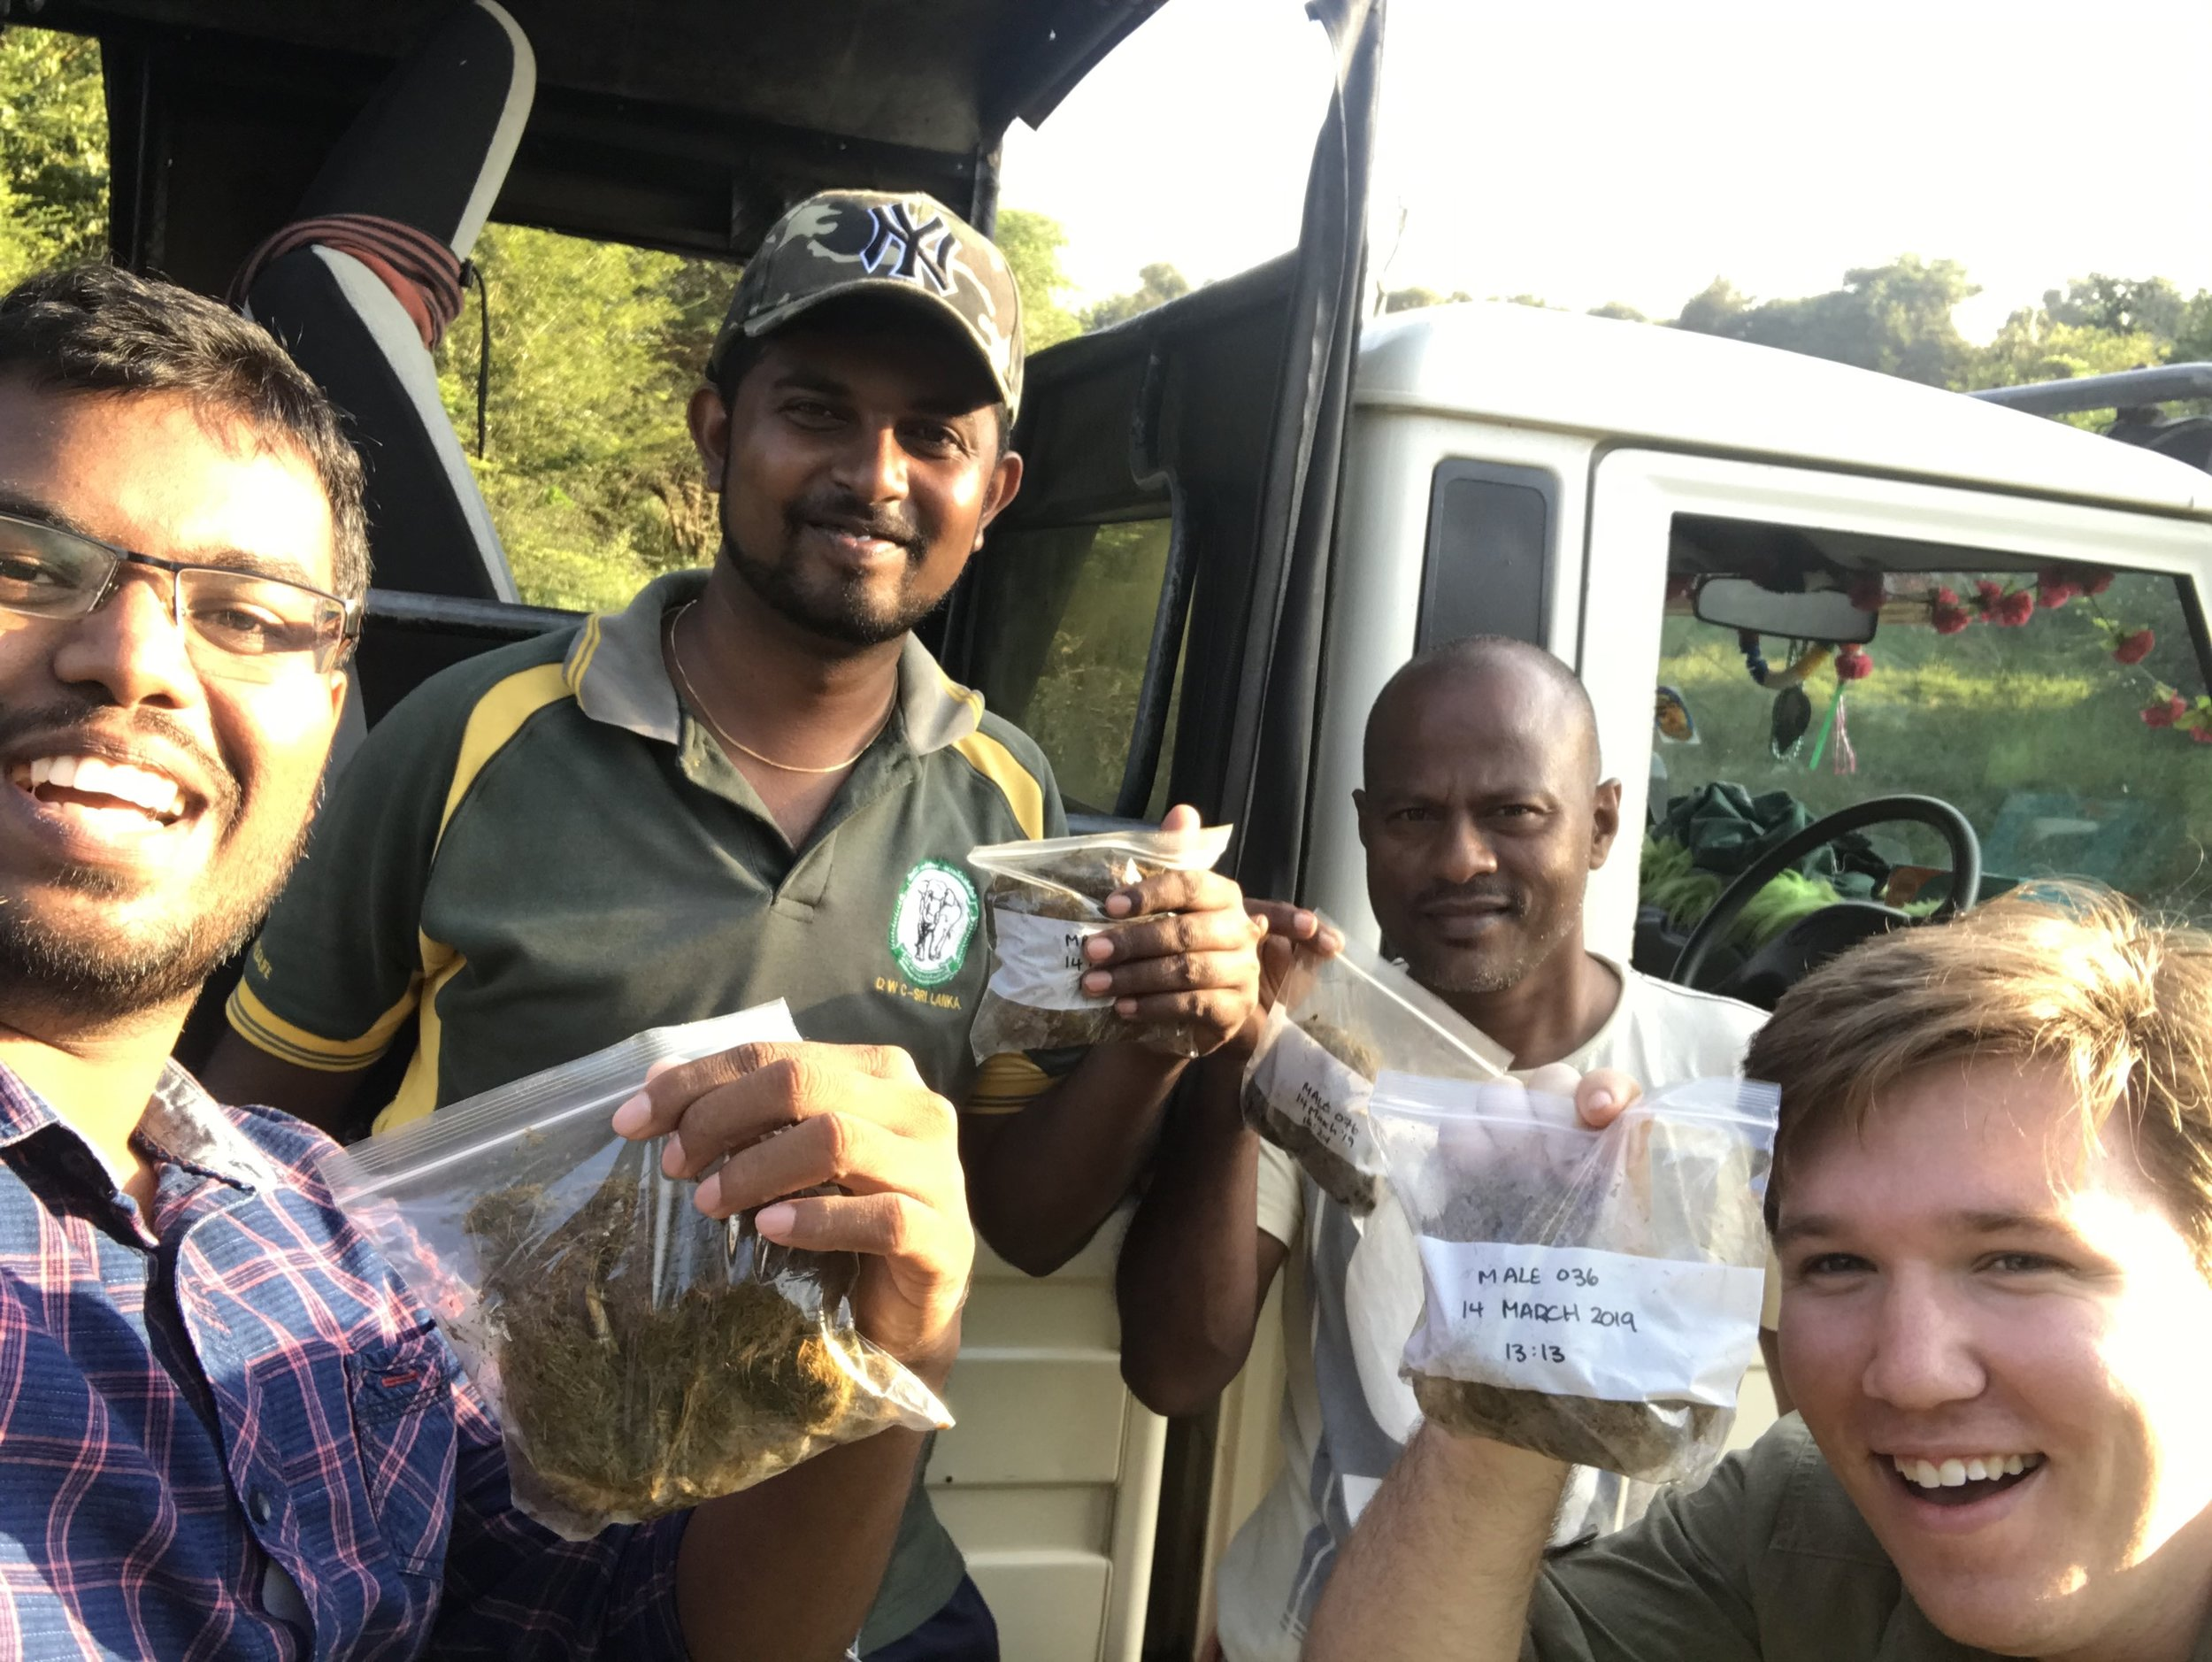 Look how happy our poop team is! Last week, we collected an unprecedented   four   samples in one day. From L to R: Sachintha, Dhanushka, Nimal (who may not be excited, but is instead questioning his life decisions that led him to hold a piece of elephant dung in his hand), and me.